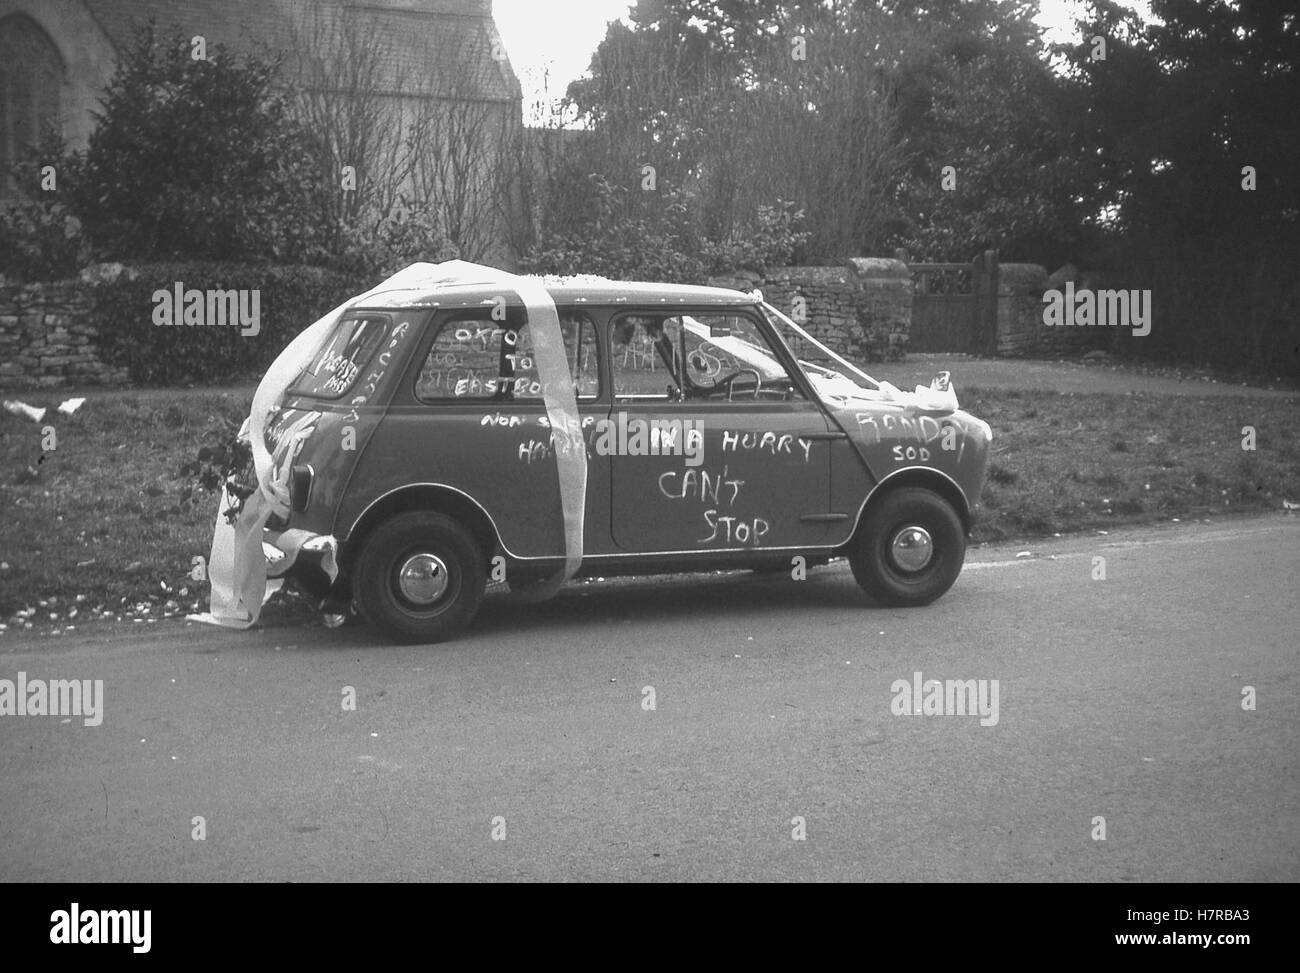 1960s, historical,  a married couple's mini car decorated with ribbons and fun slogans at the wedding outside - Stock Image